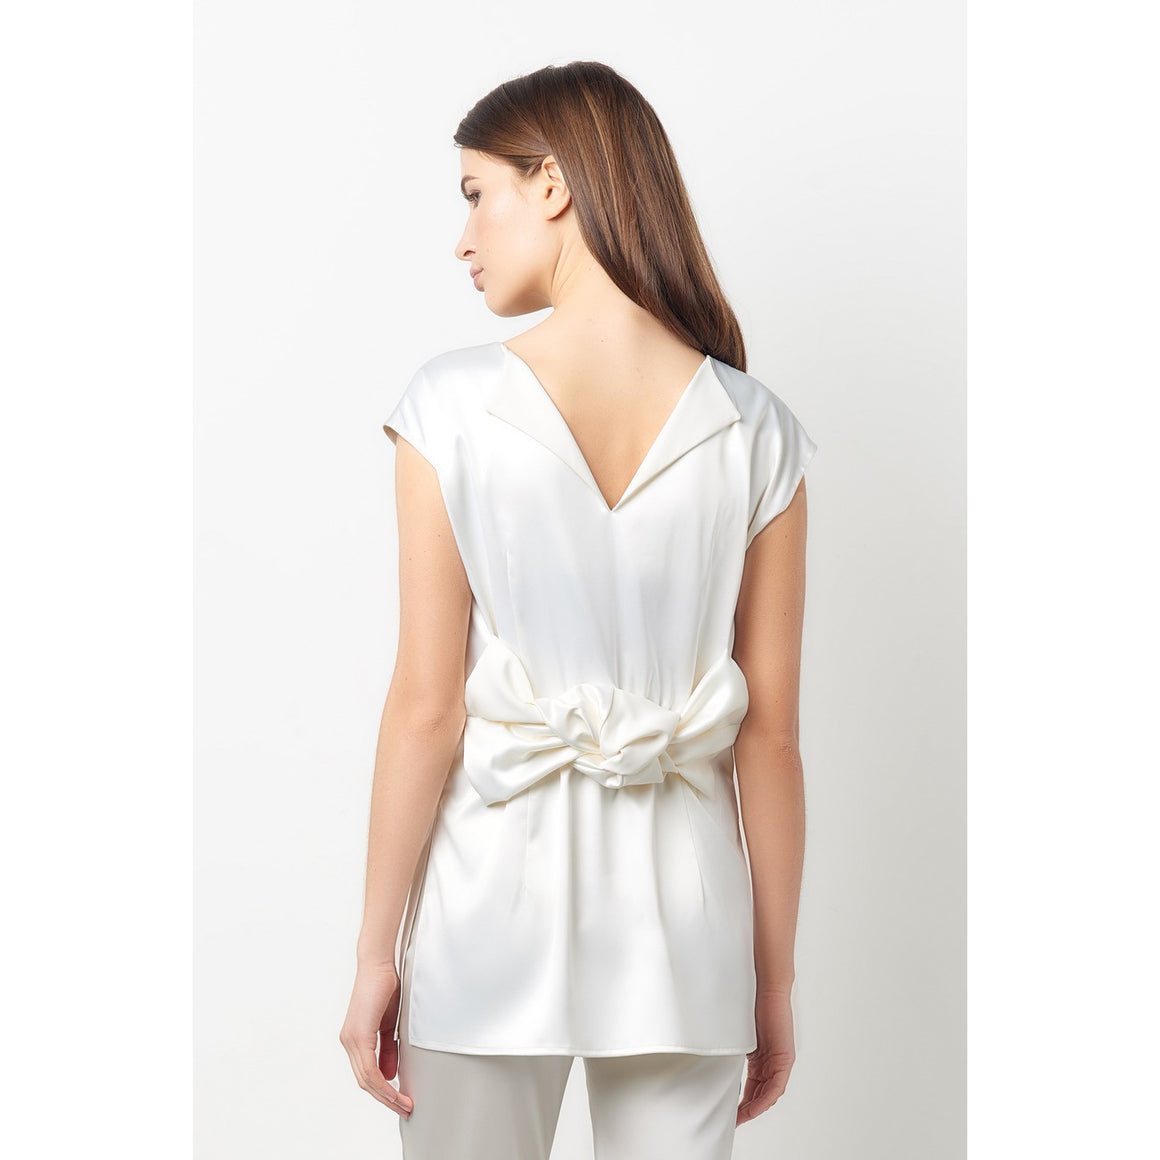 Lana White Reversible Knot Top